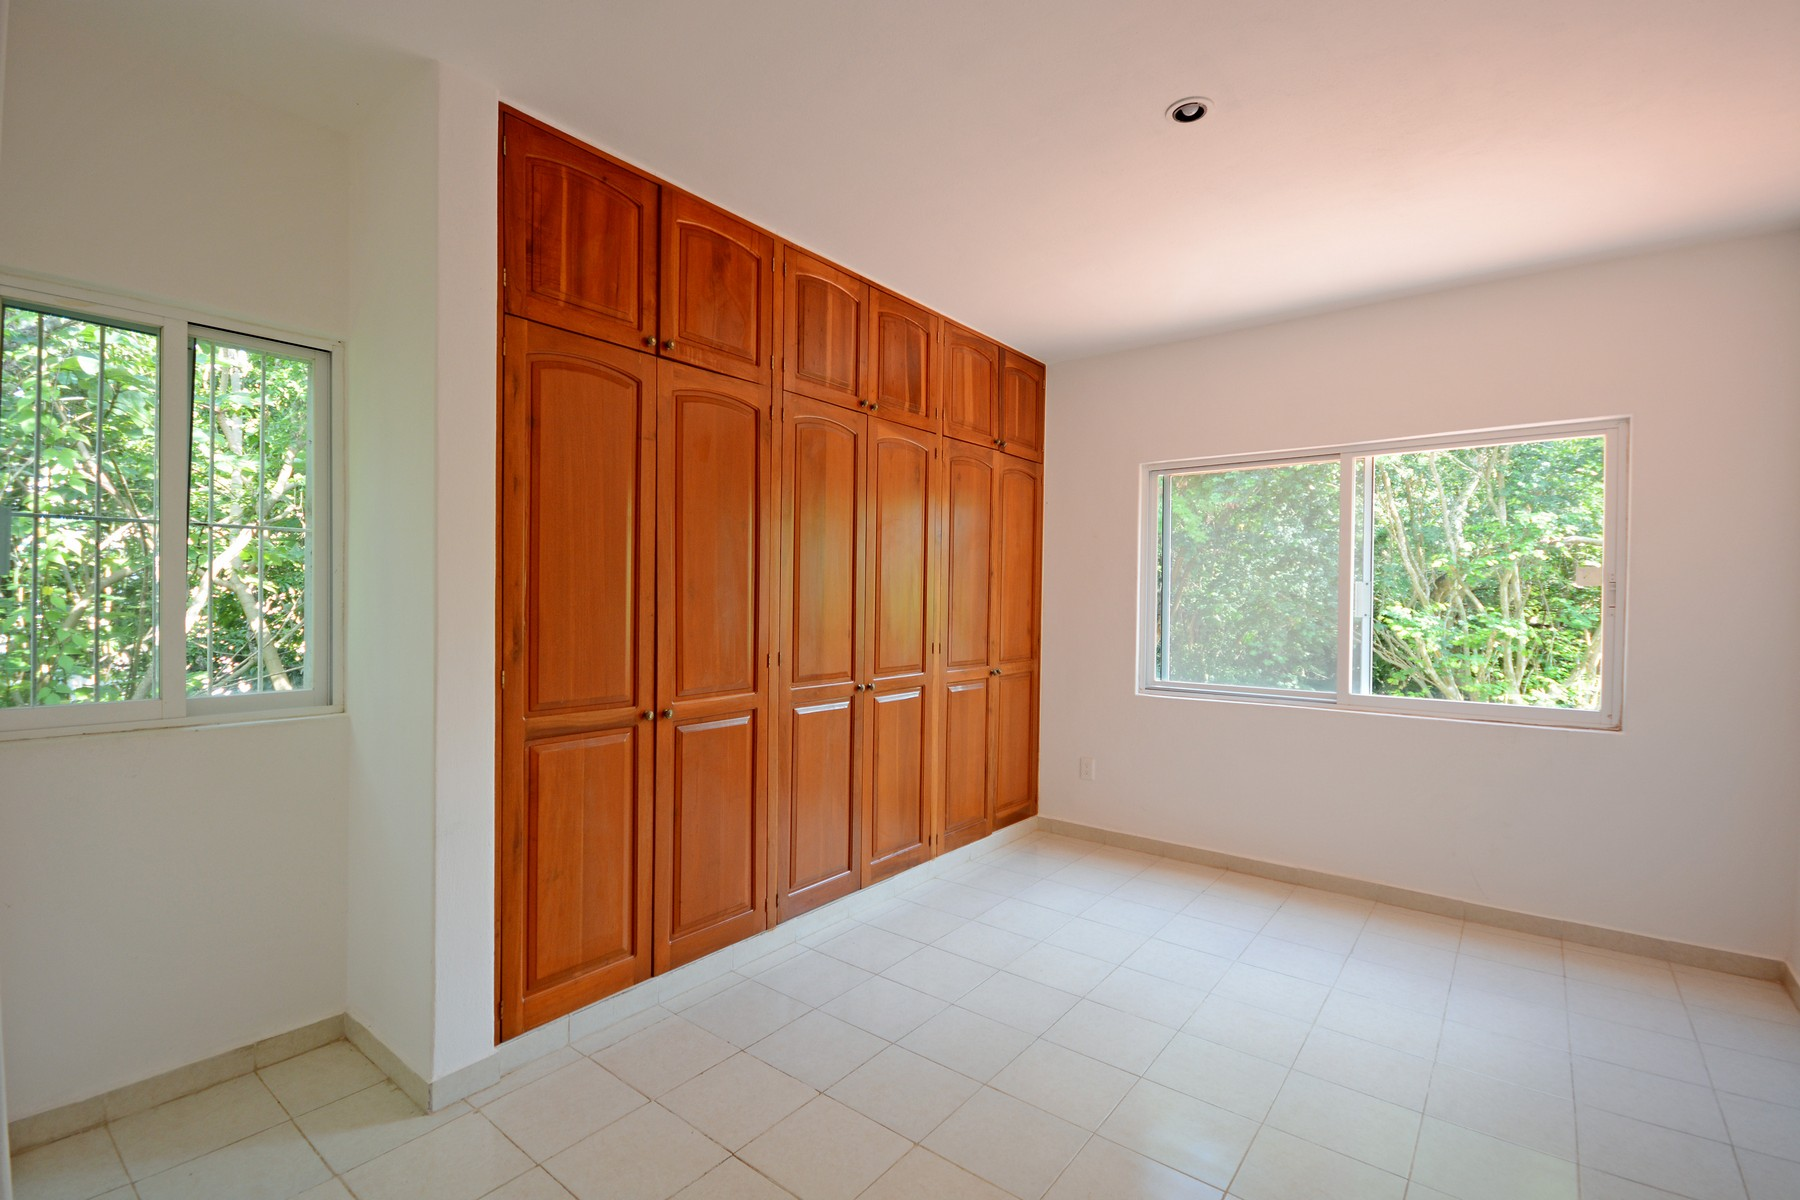 Additional photo for property listing at CASA MONIQUE Club Real, Playacar Fase II Lote 259 Playa Del Carmen, Quintana Roo 77710 México